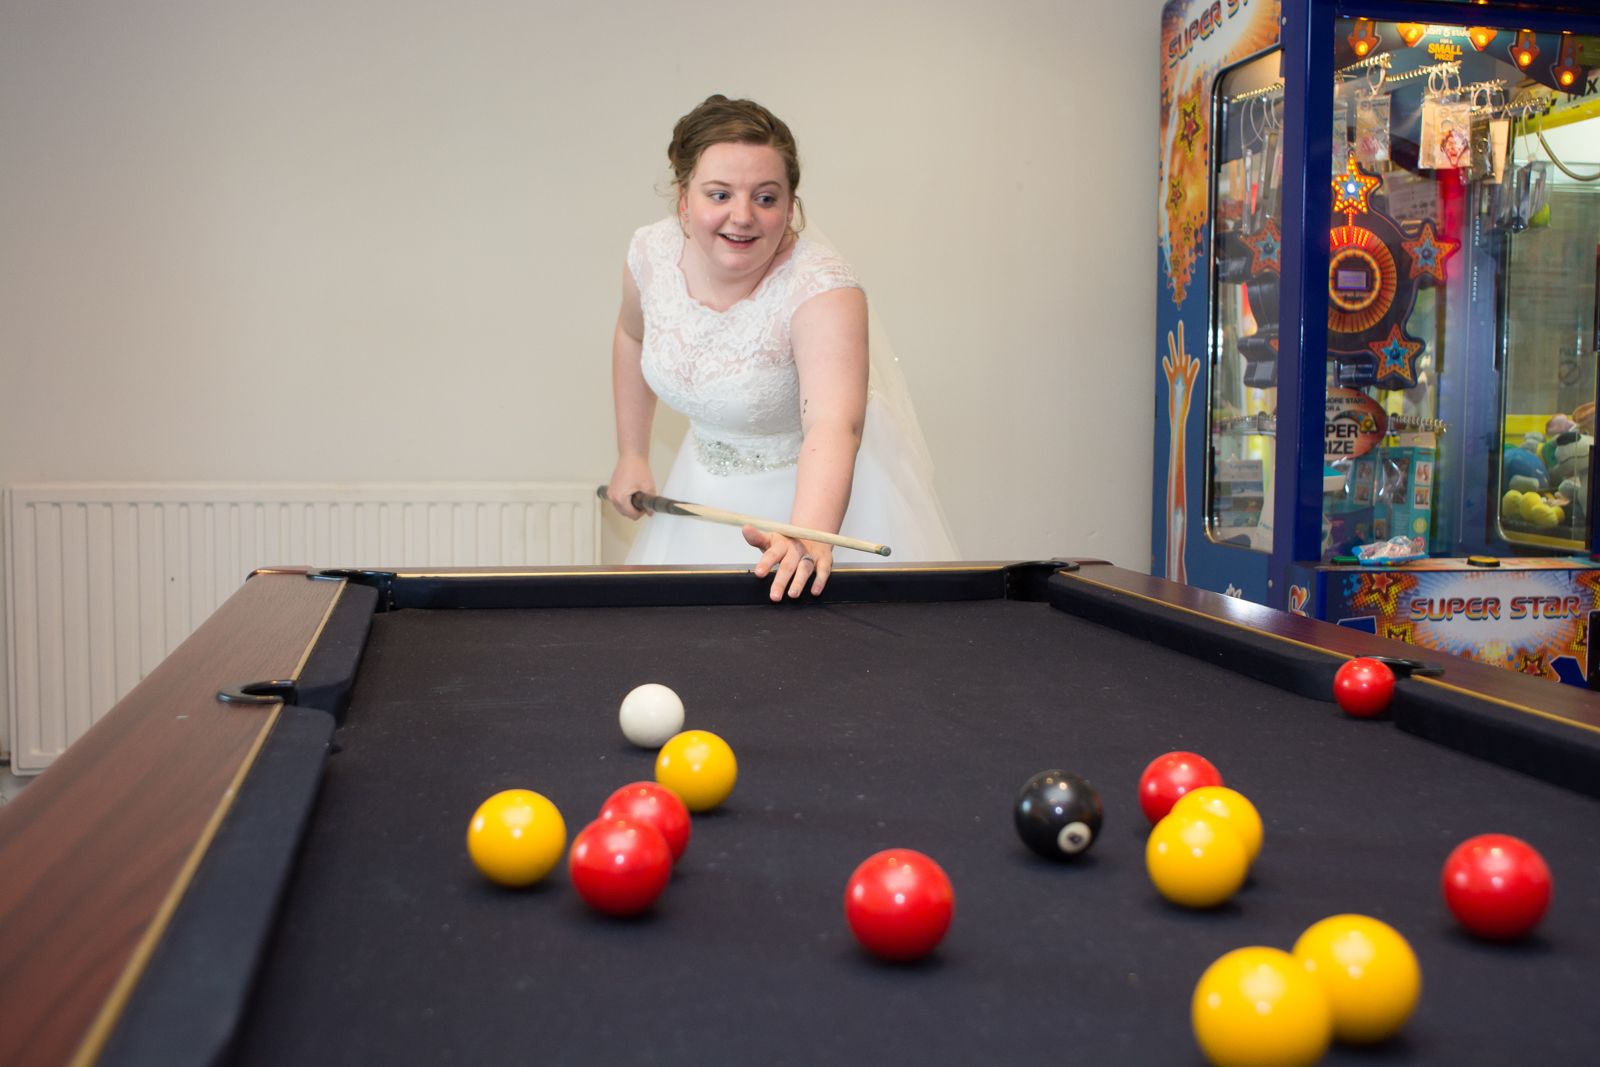 playing pool in her wedding dress at waterside cornwall